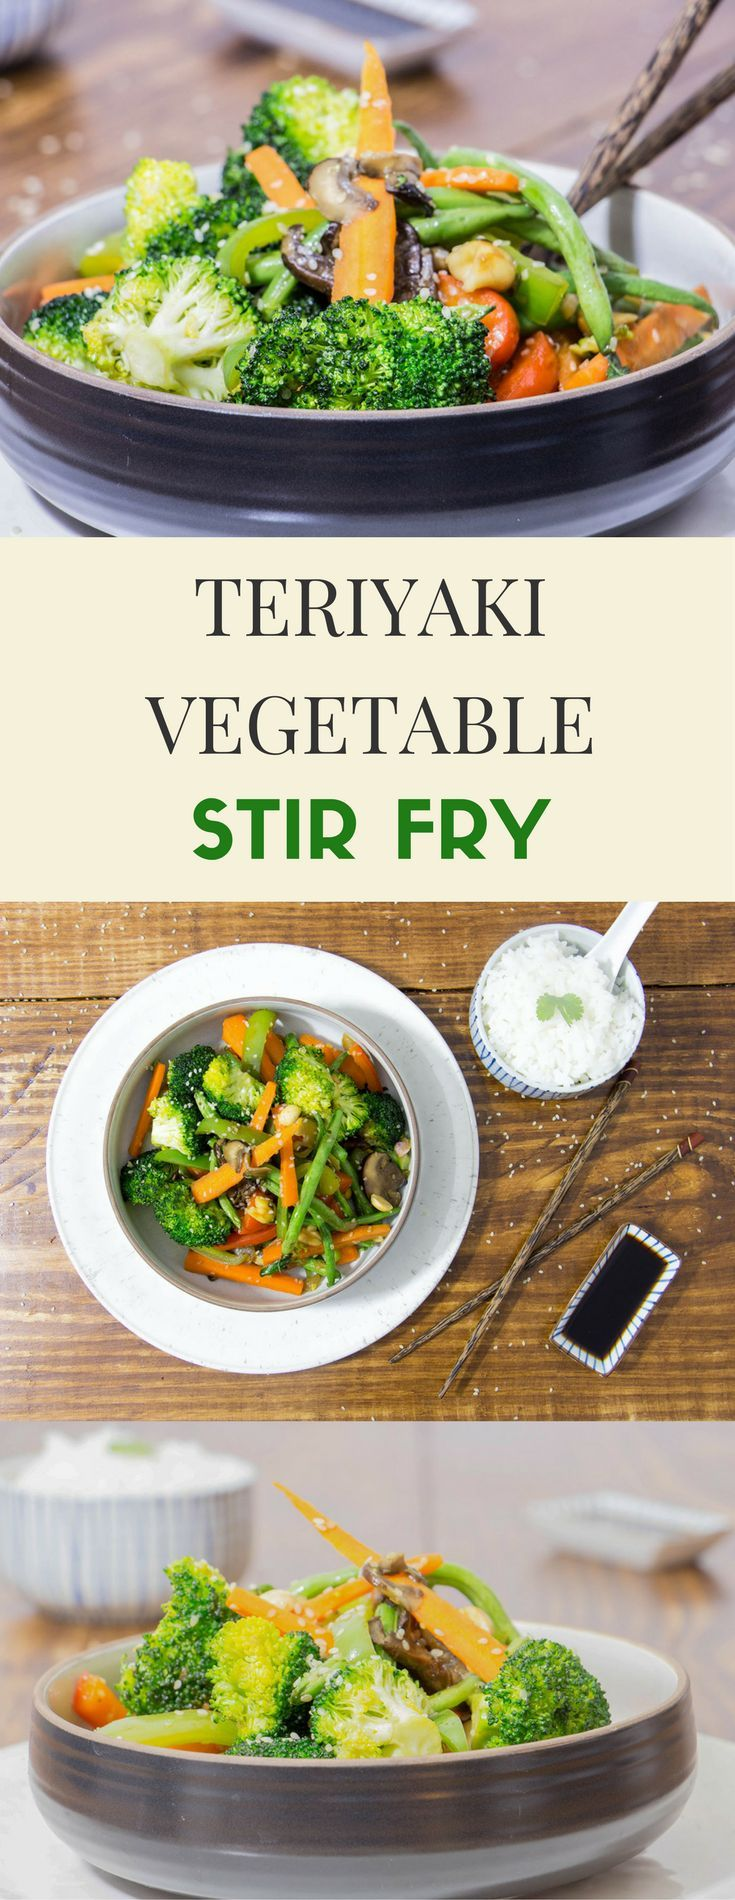 96 reference of teriyaki stir fry recipe vegetable